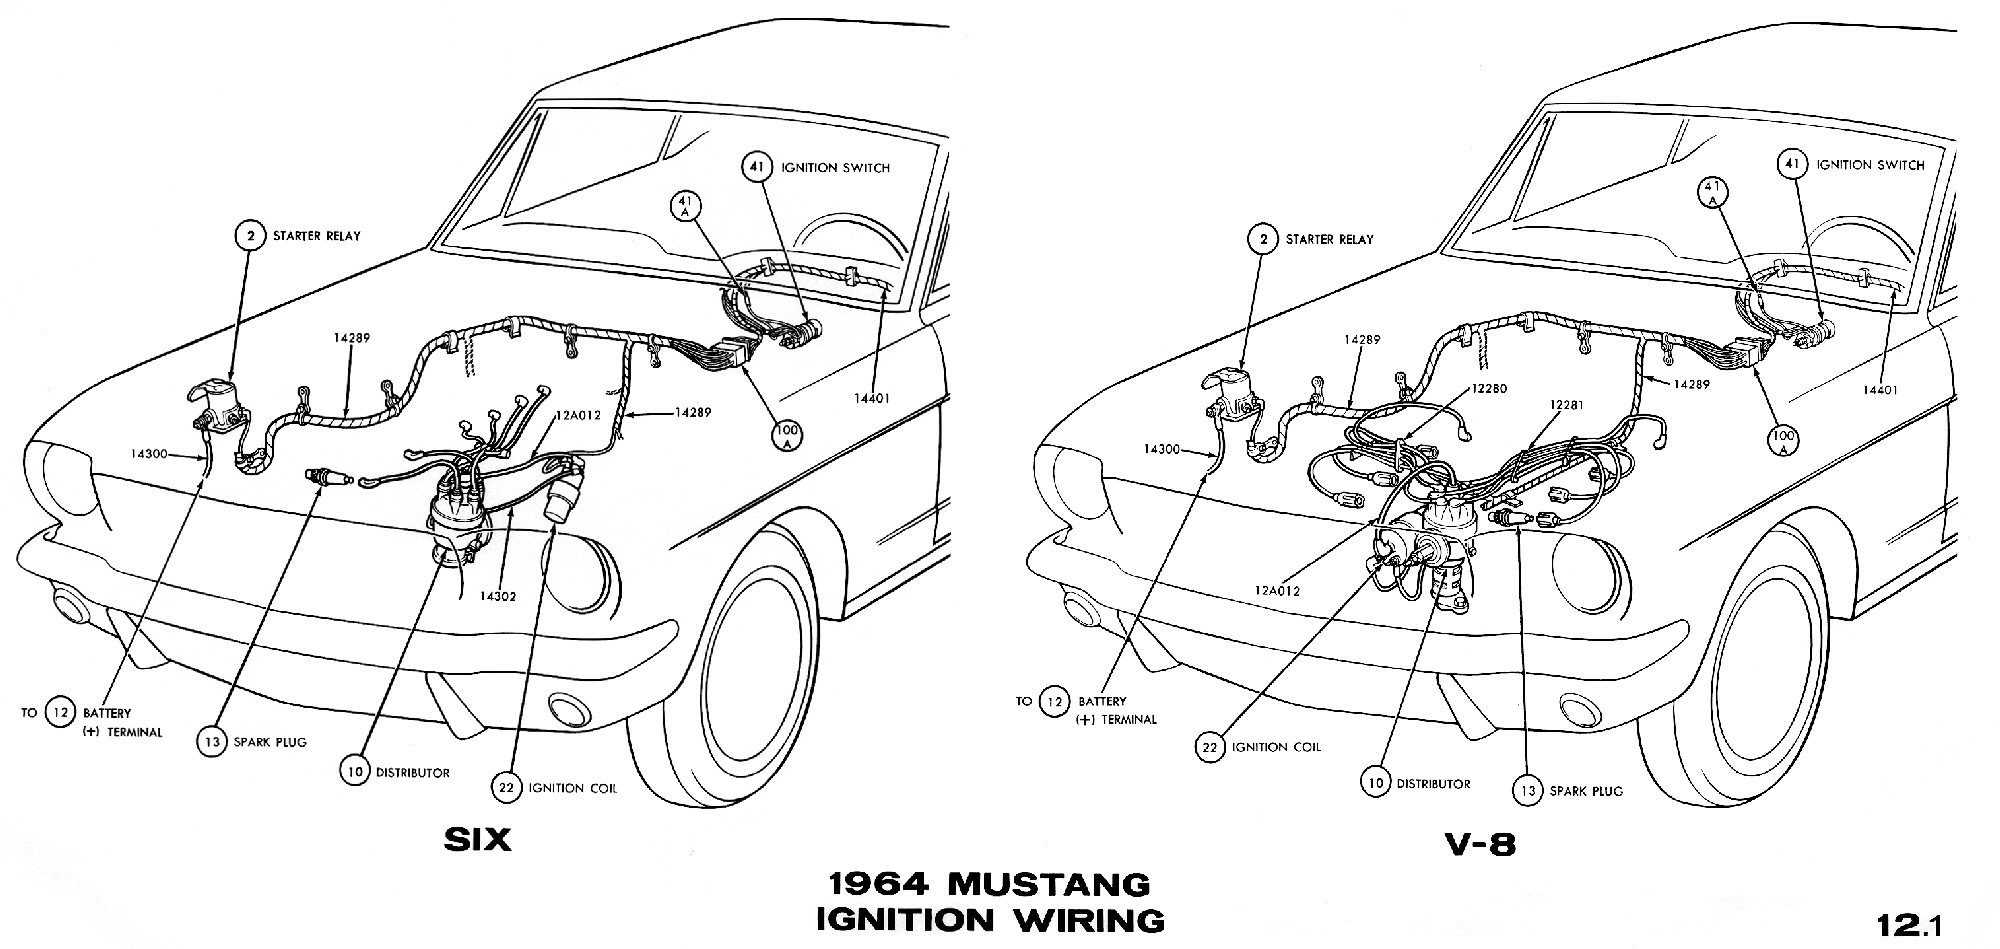 1965 mustang ignition coil wiring diagram 2005 jeep grand cherokee limited stereo 1967 corvette horn relay auto